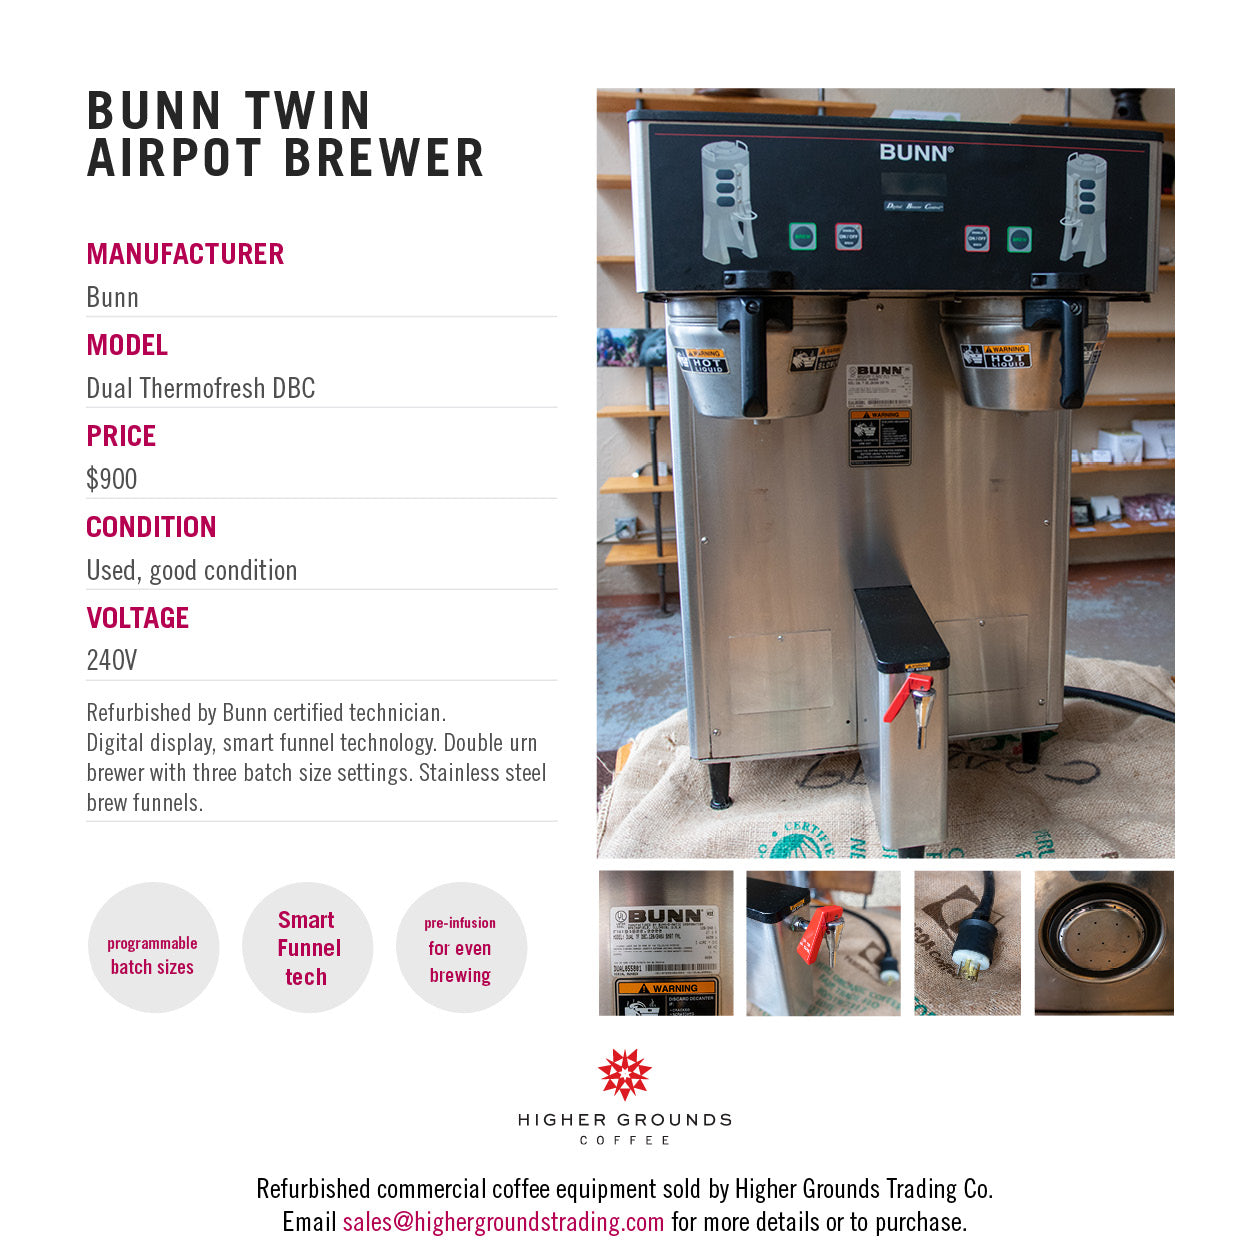 Bunn Dual ThermoFresh DBS coffee brewer for sale from Higher Grounds Coffee